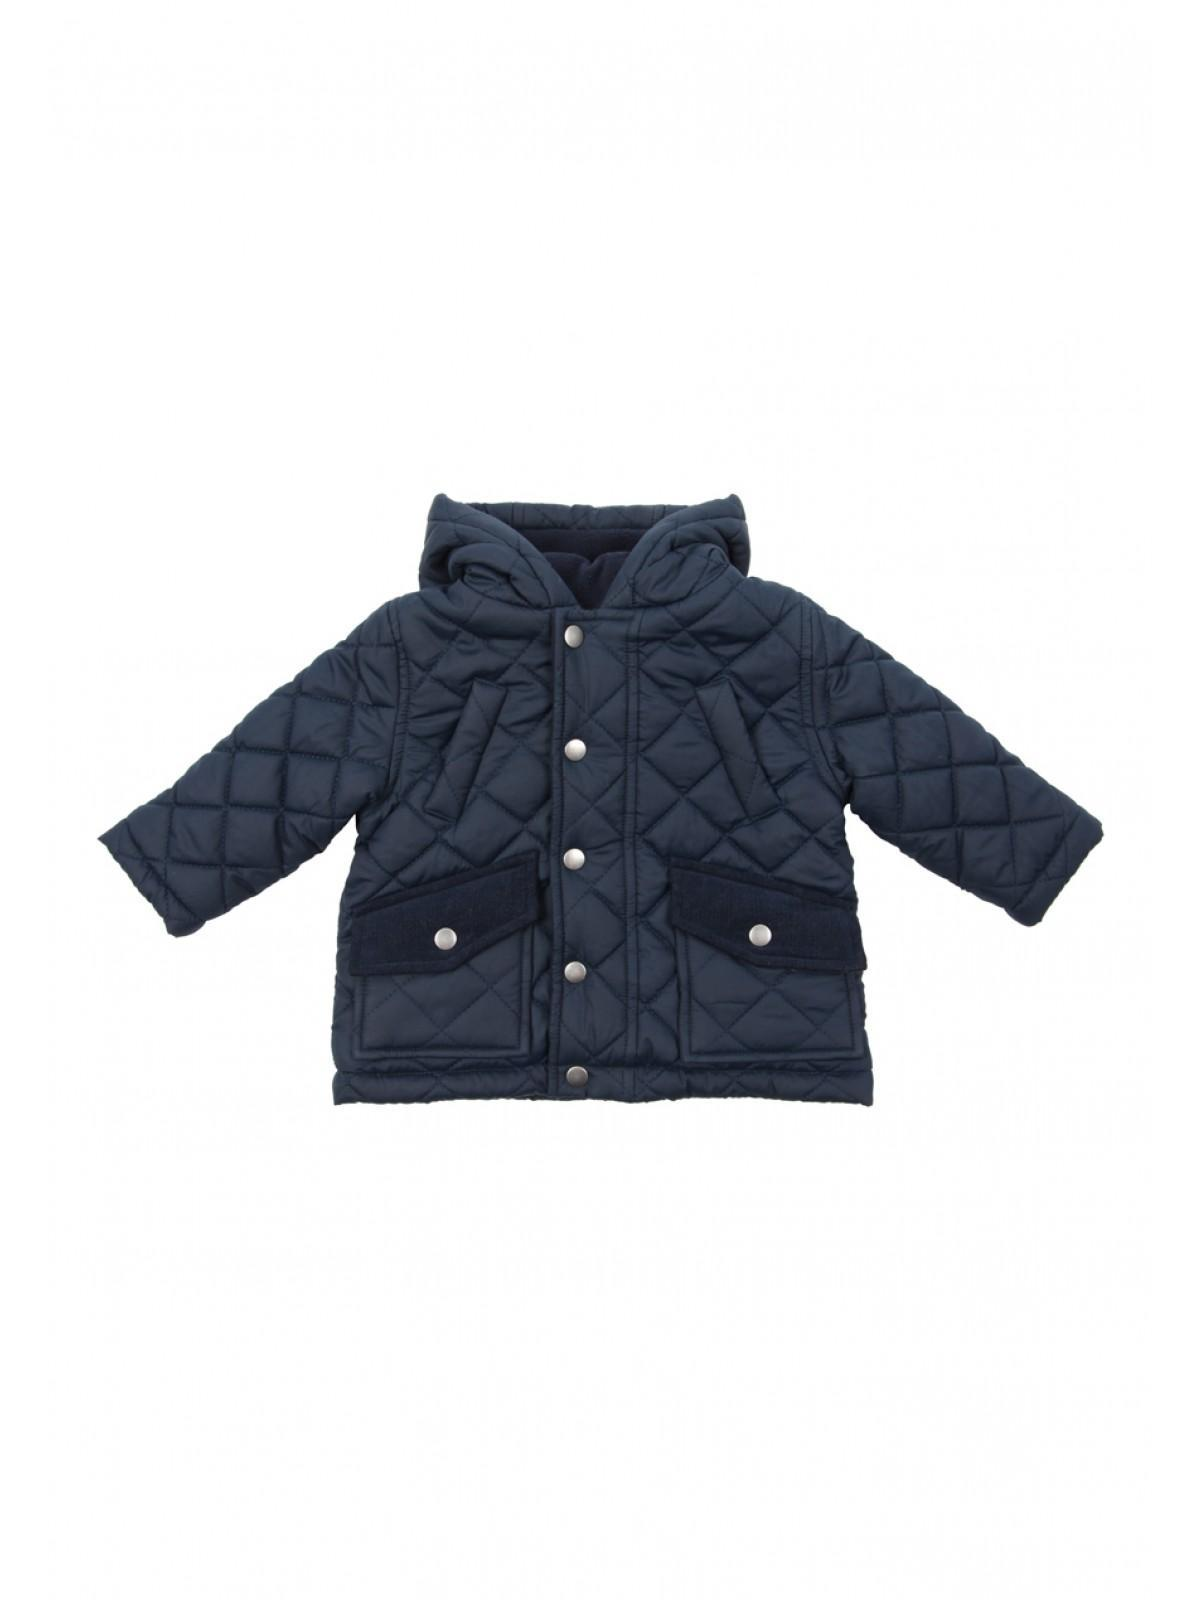 Boys aby Boys Quilted Jacket | Peacocks : baby quilted coat - Adamdwight.com